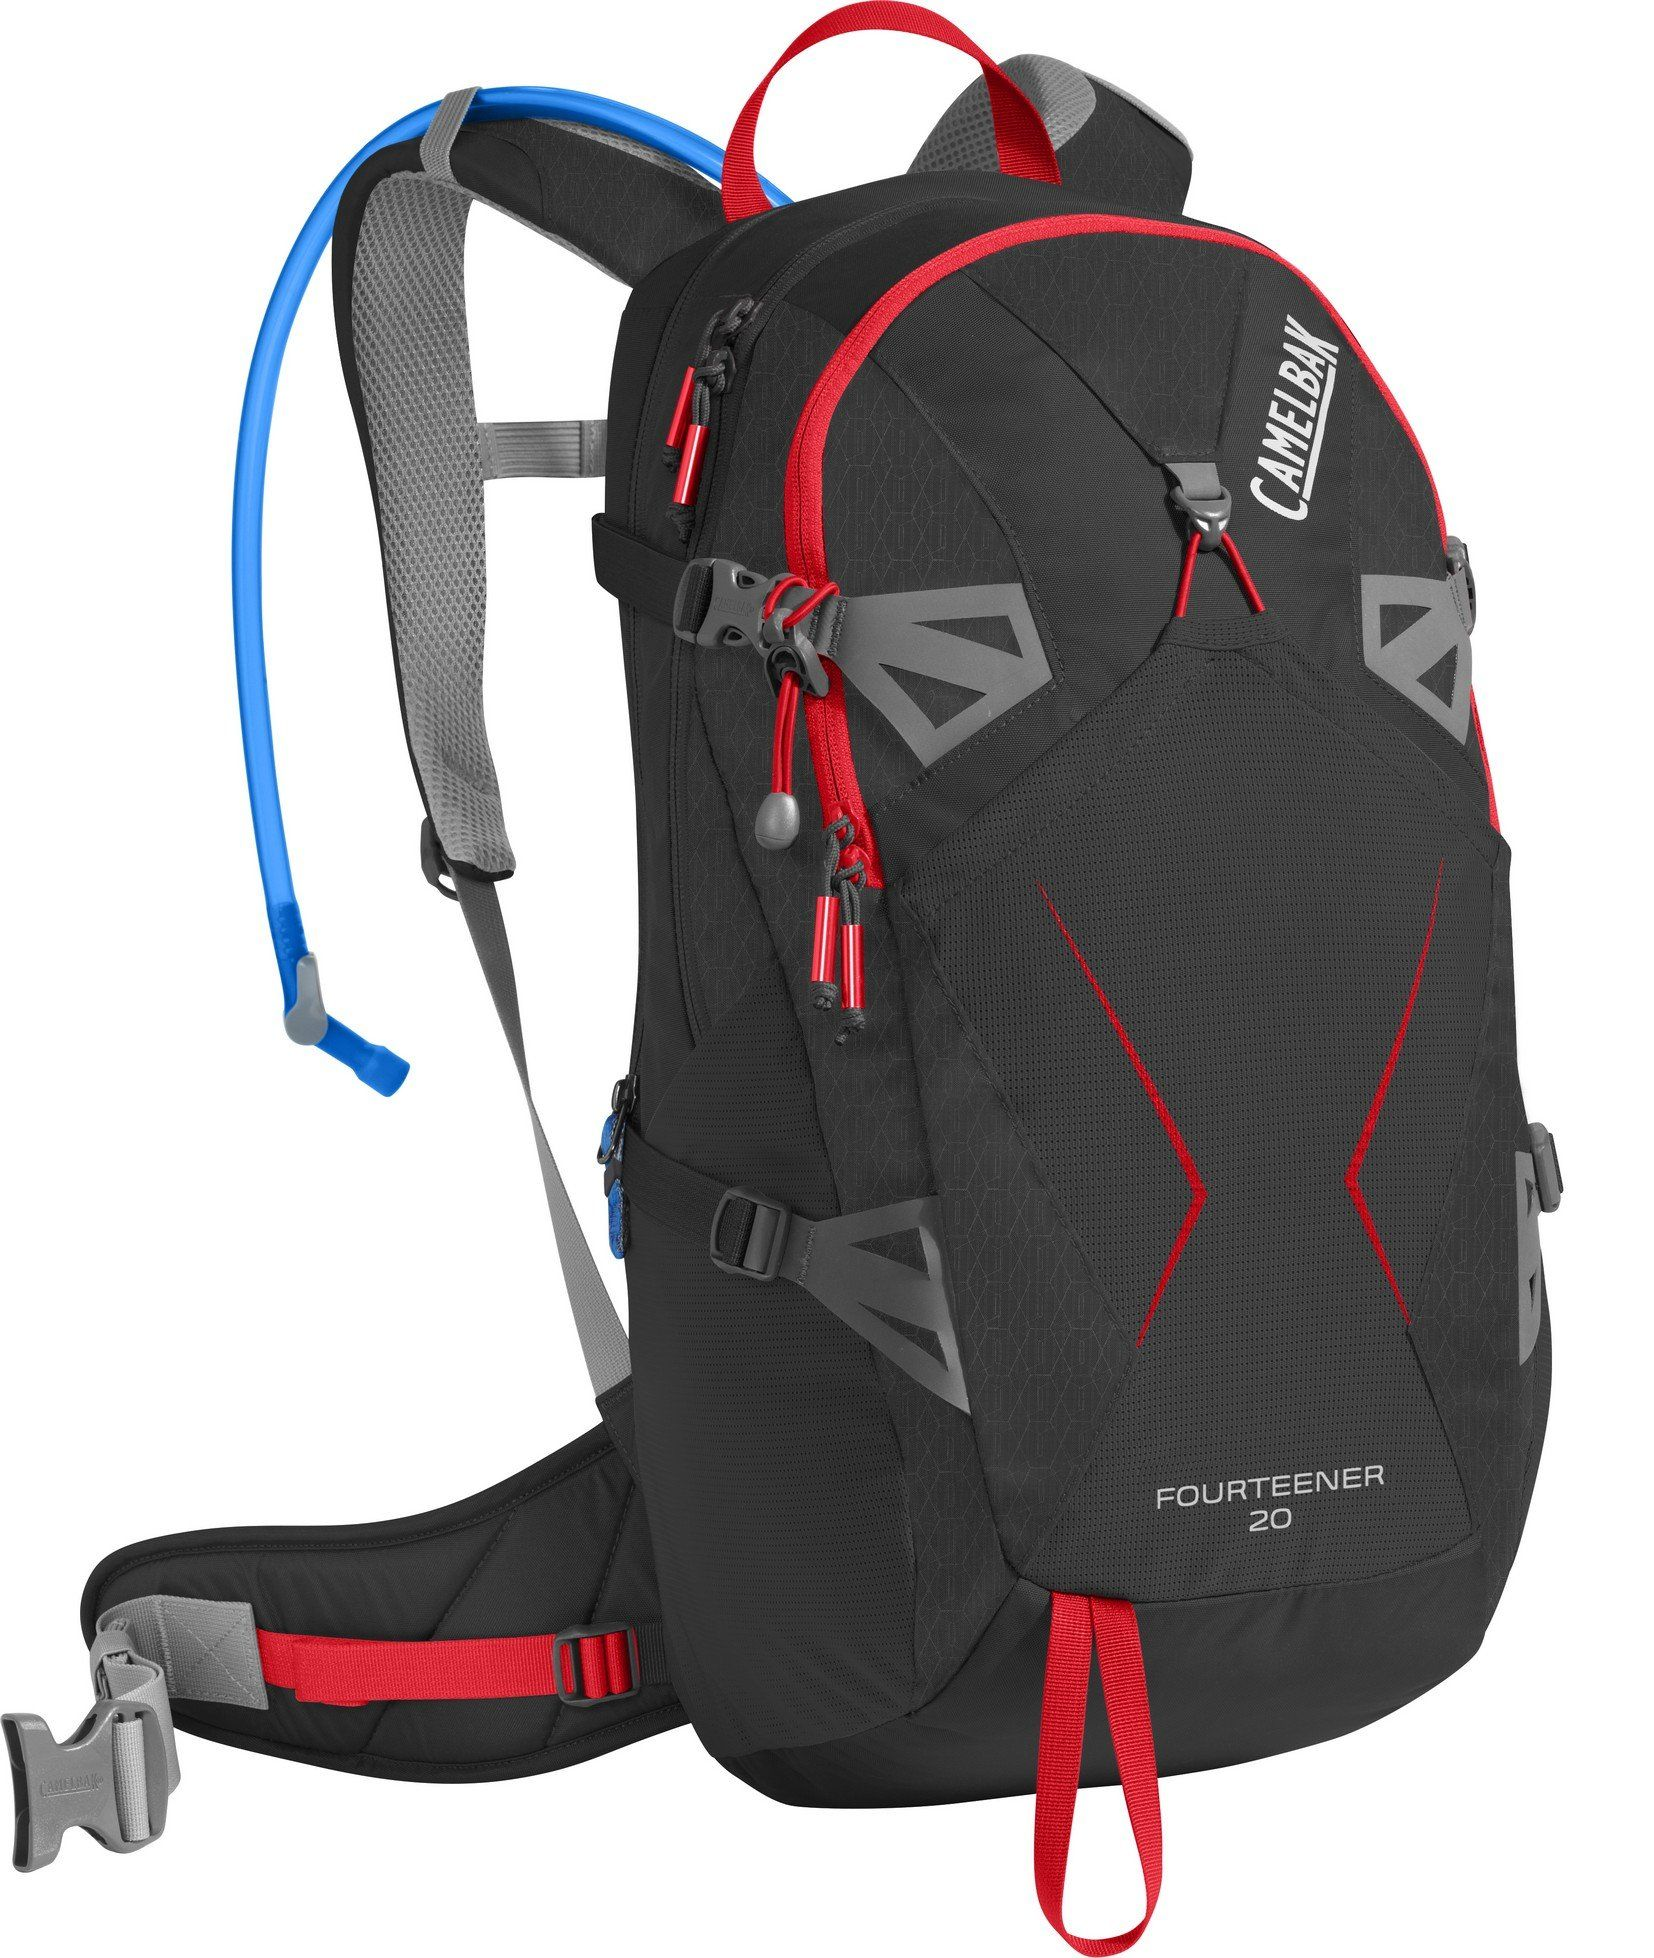 f3847aadb81 CamelBak Fourteener 20 Crux Reservoir Hydration Pack, Black/Fiery Red, 3 L/